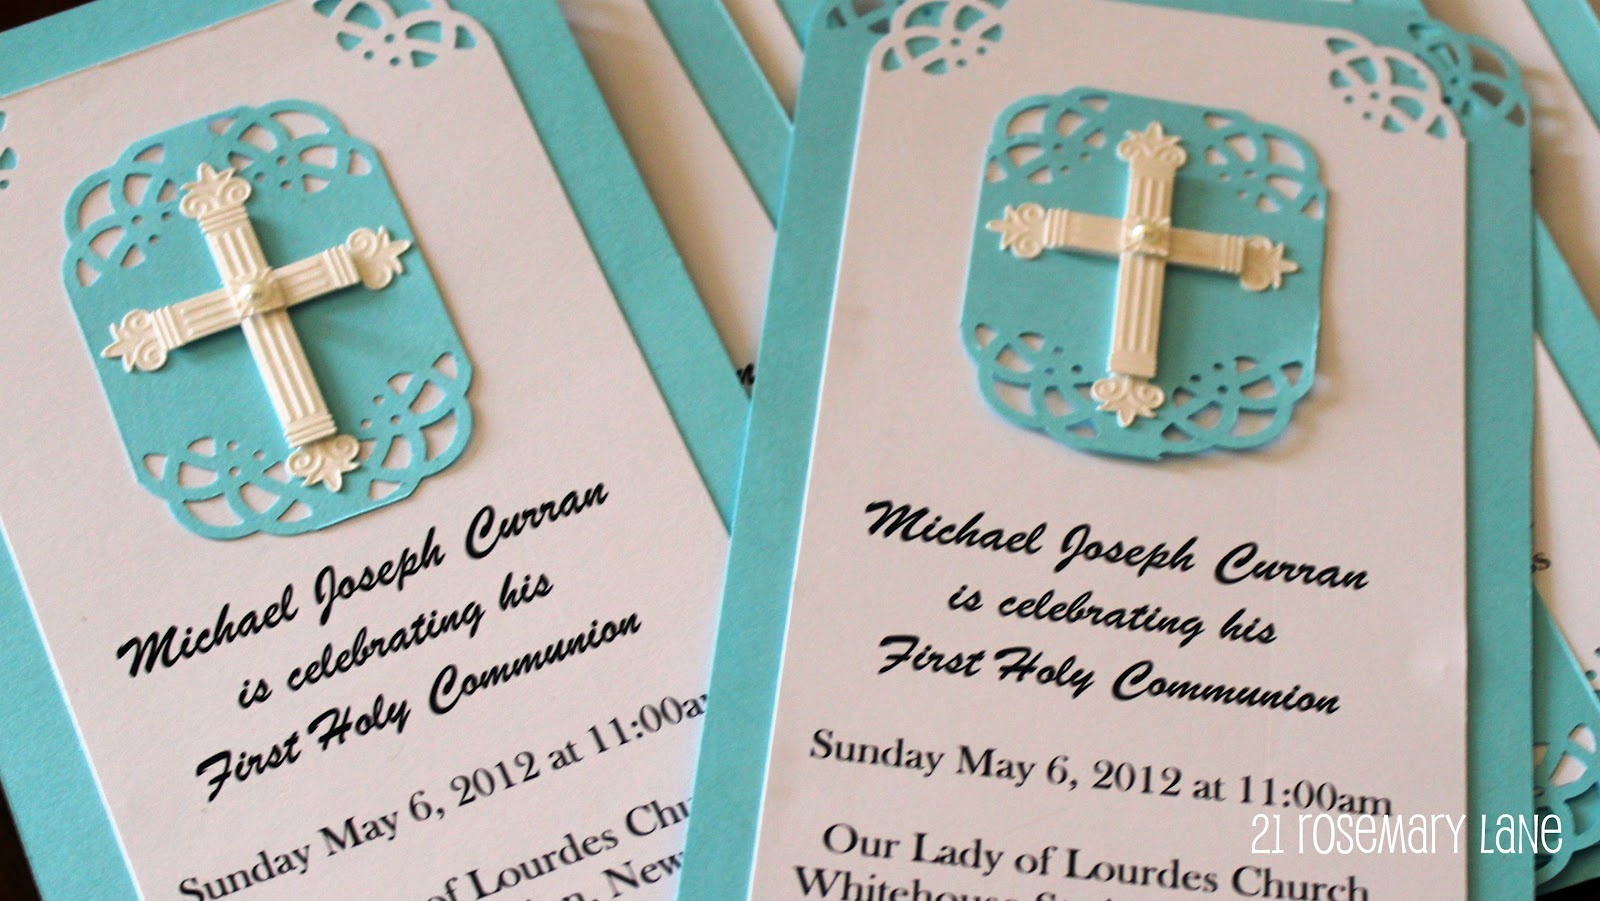 21 rosemary lane handmade first communion invitations with tutorial 41612 solutioingenieria Image collections